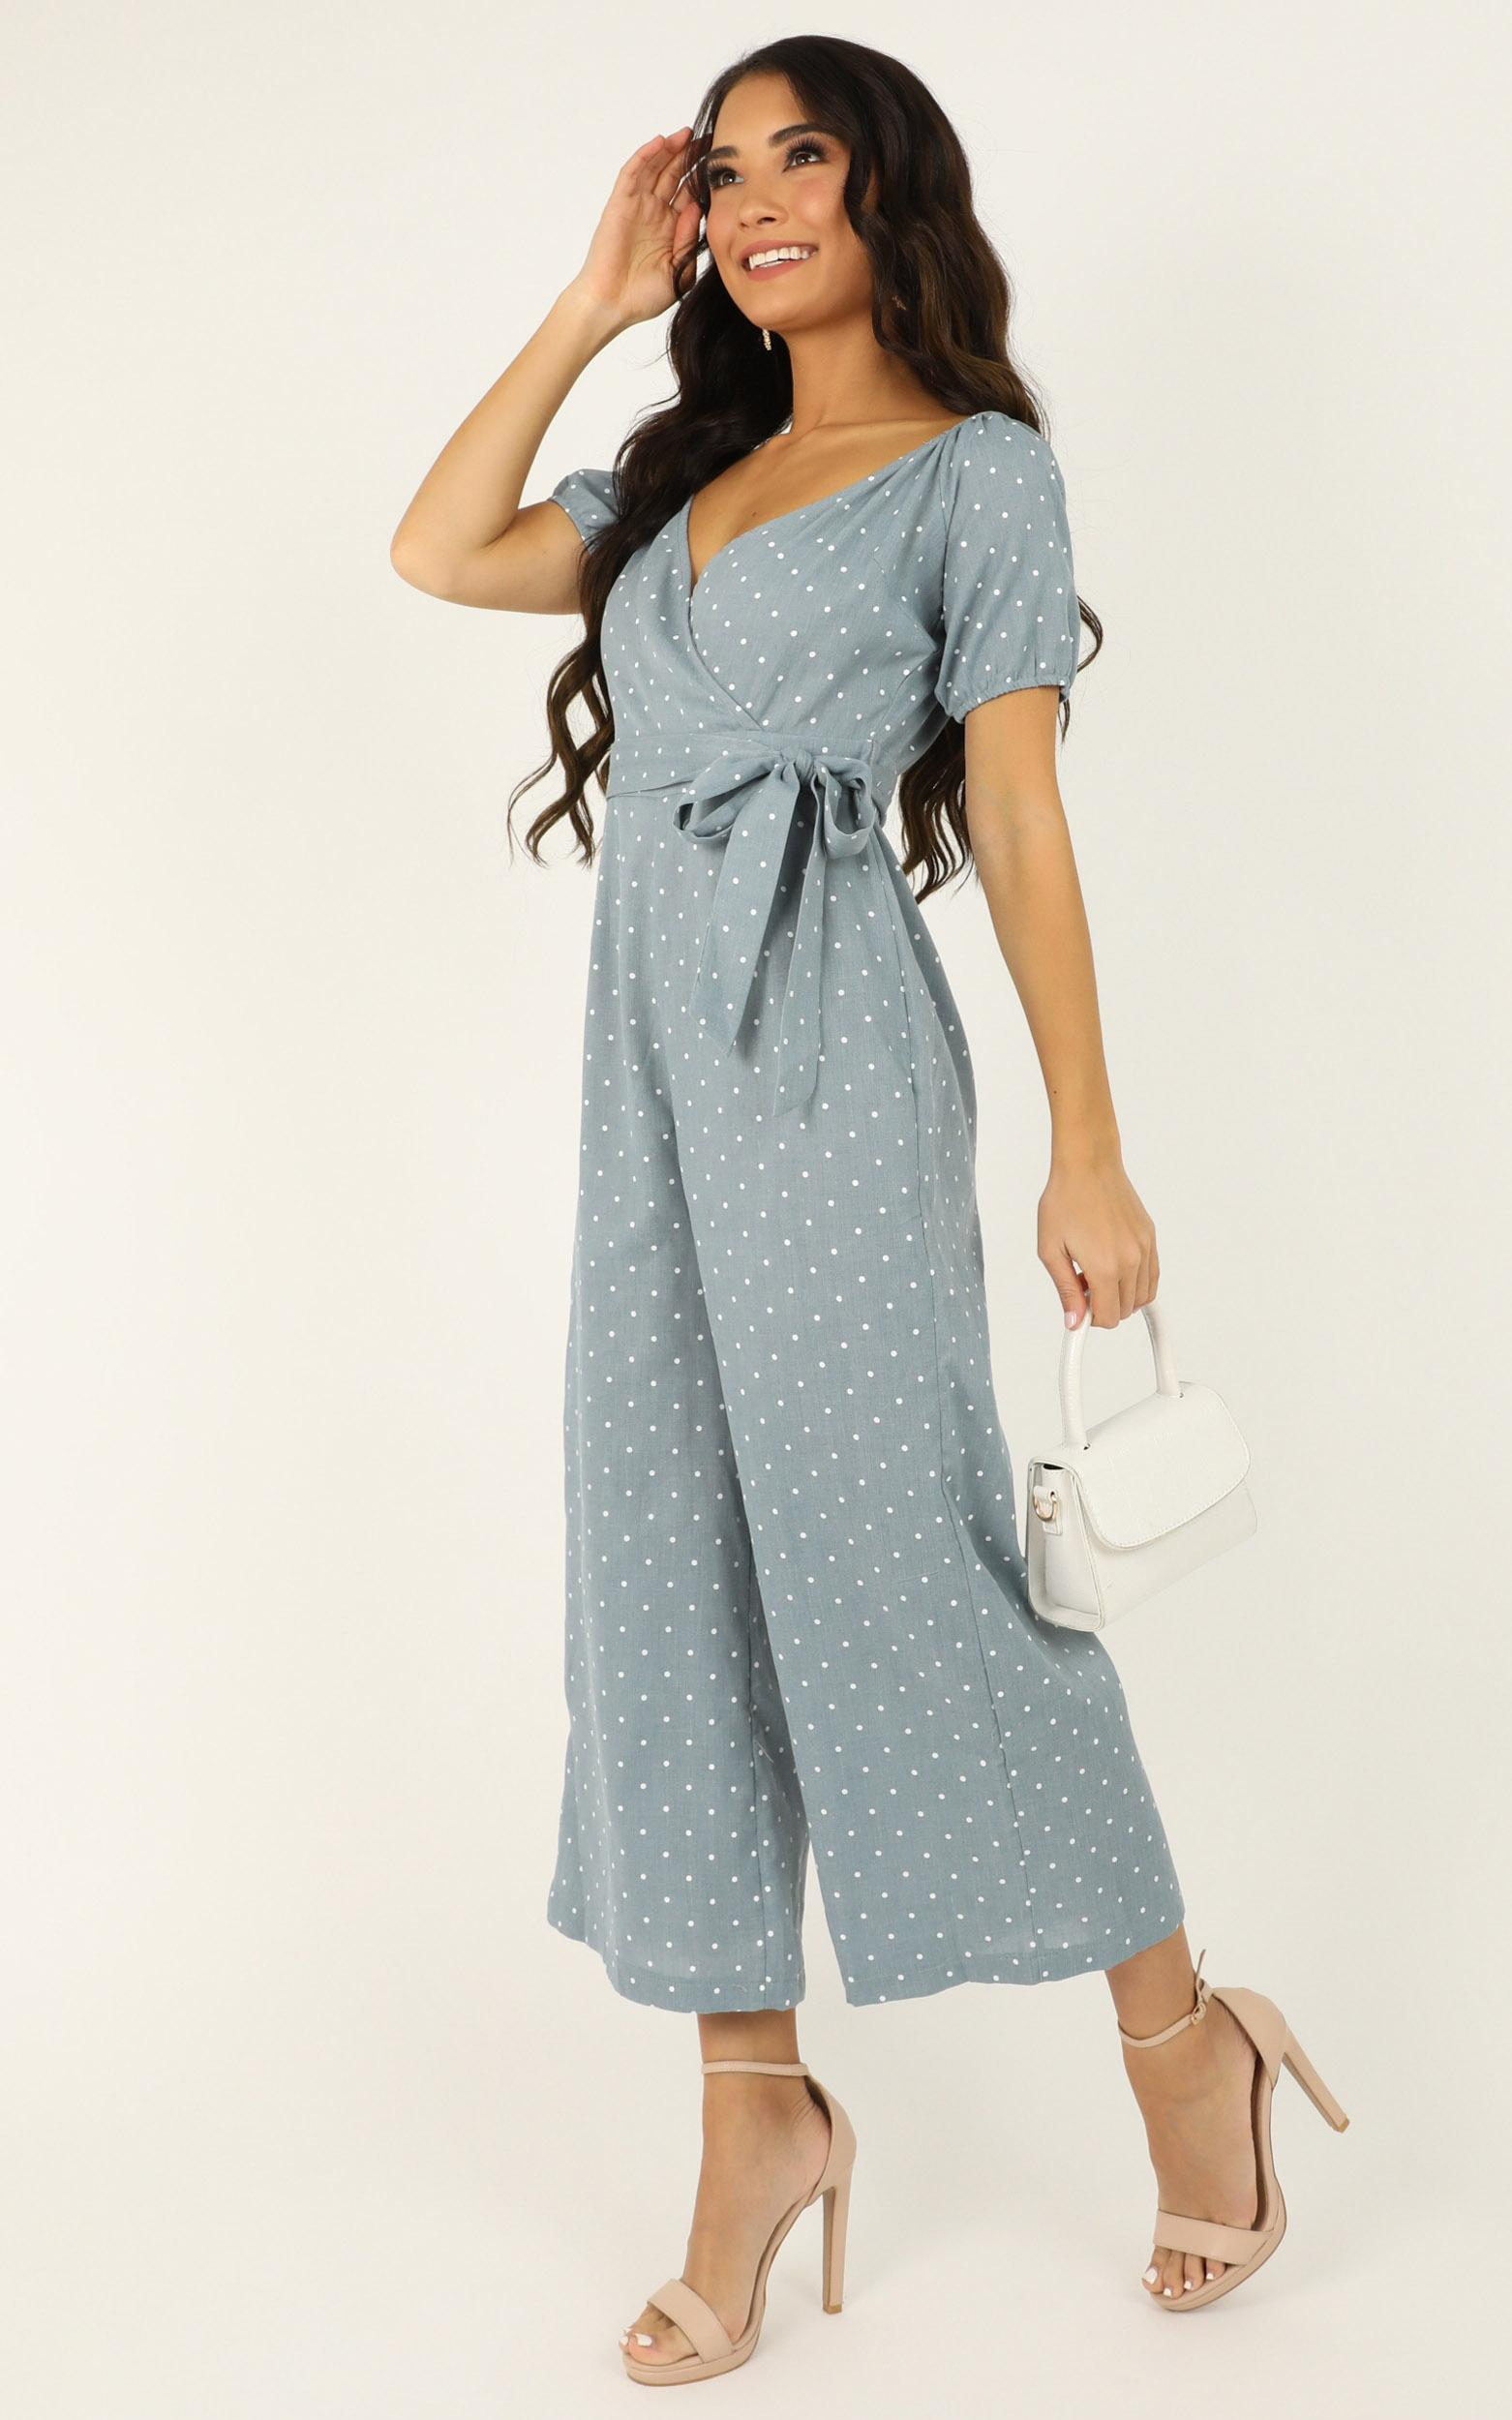 It Aint Over Jumpsuit In blue polka - 20 (XXXXL), Blue, hi-res image number null